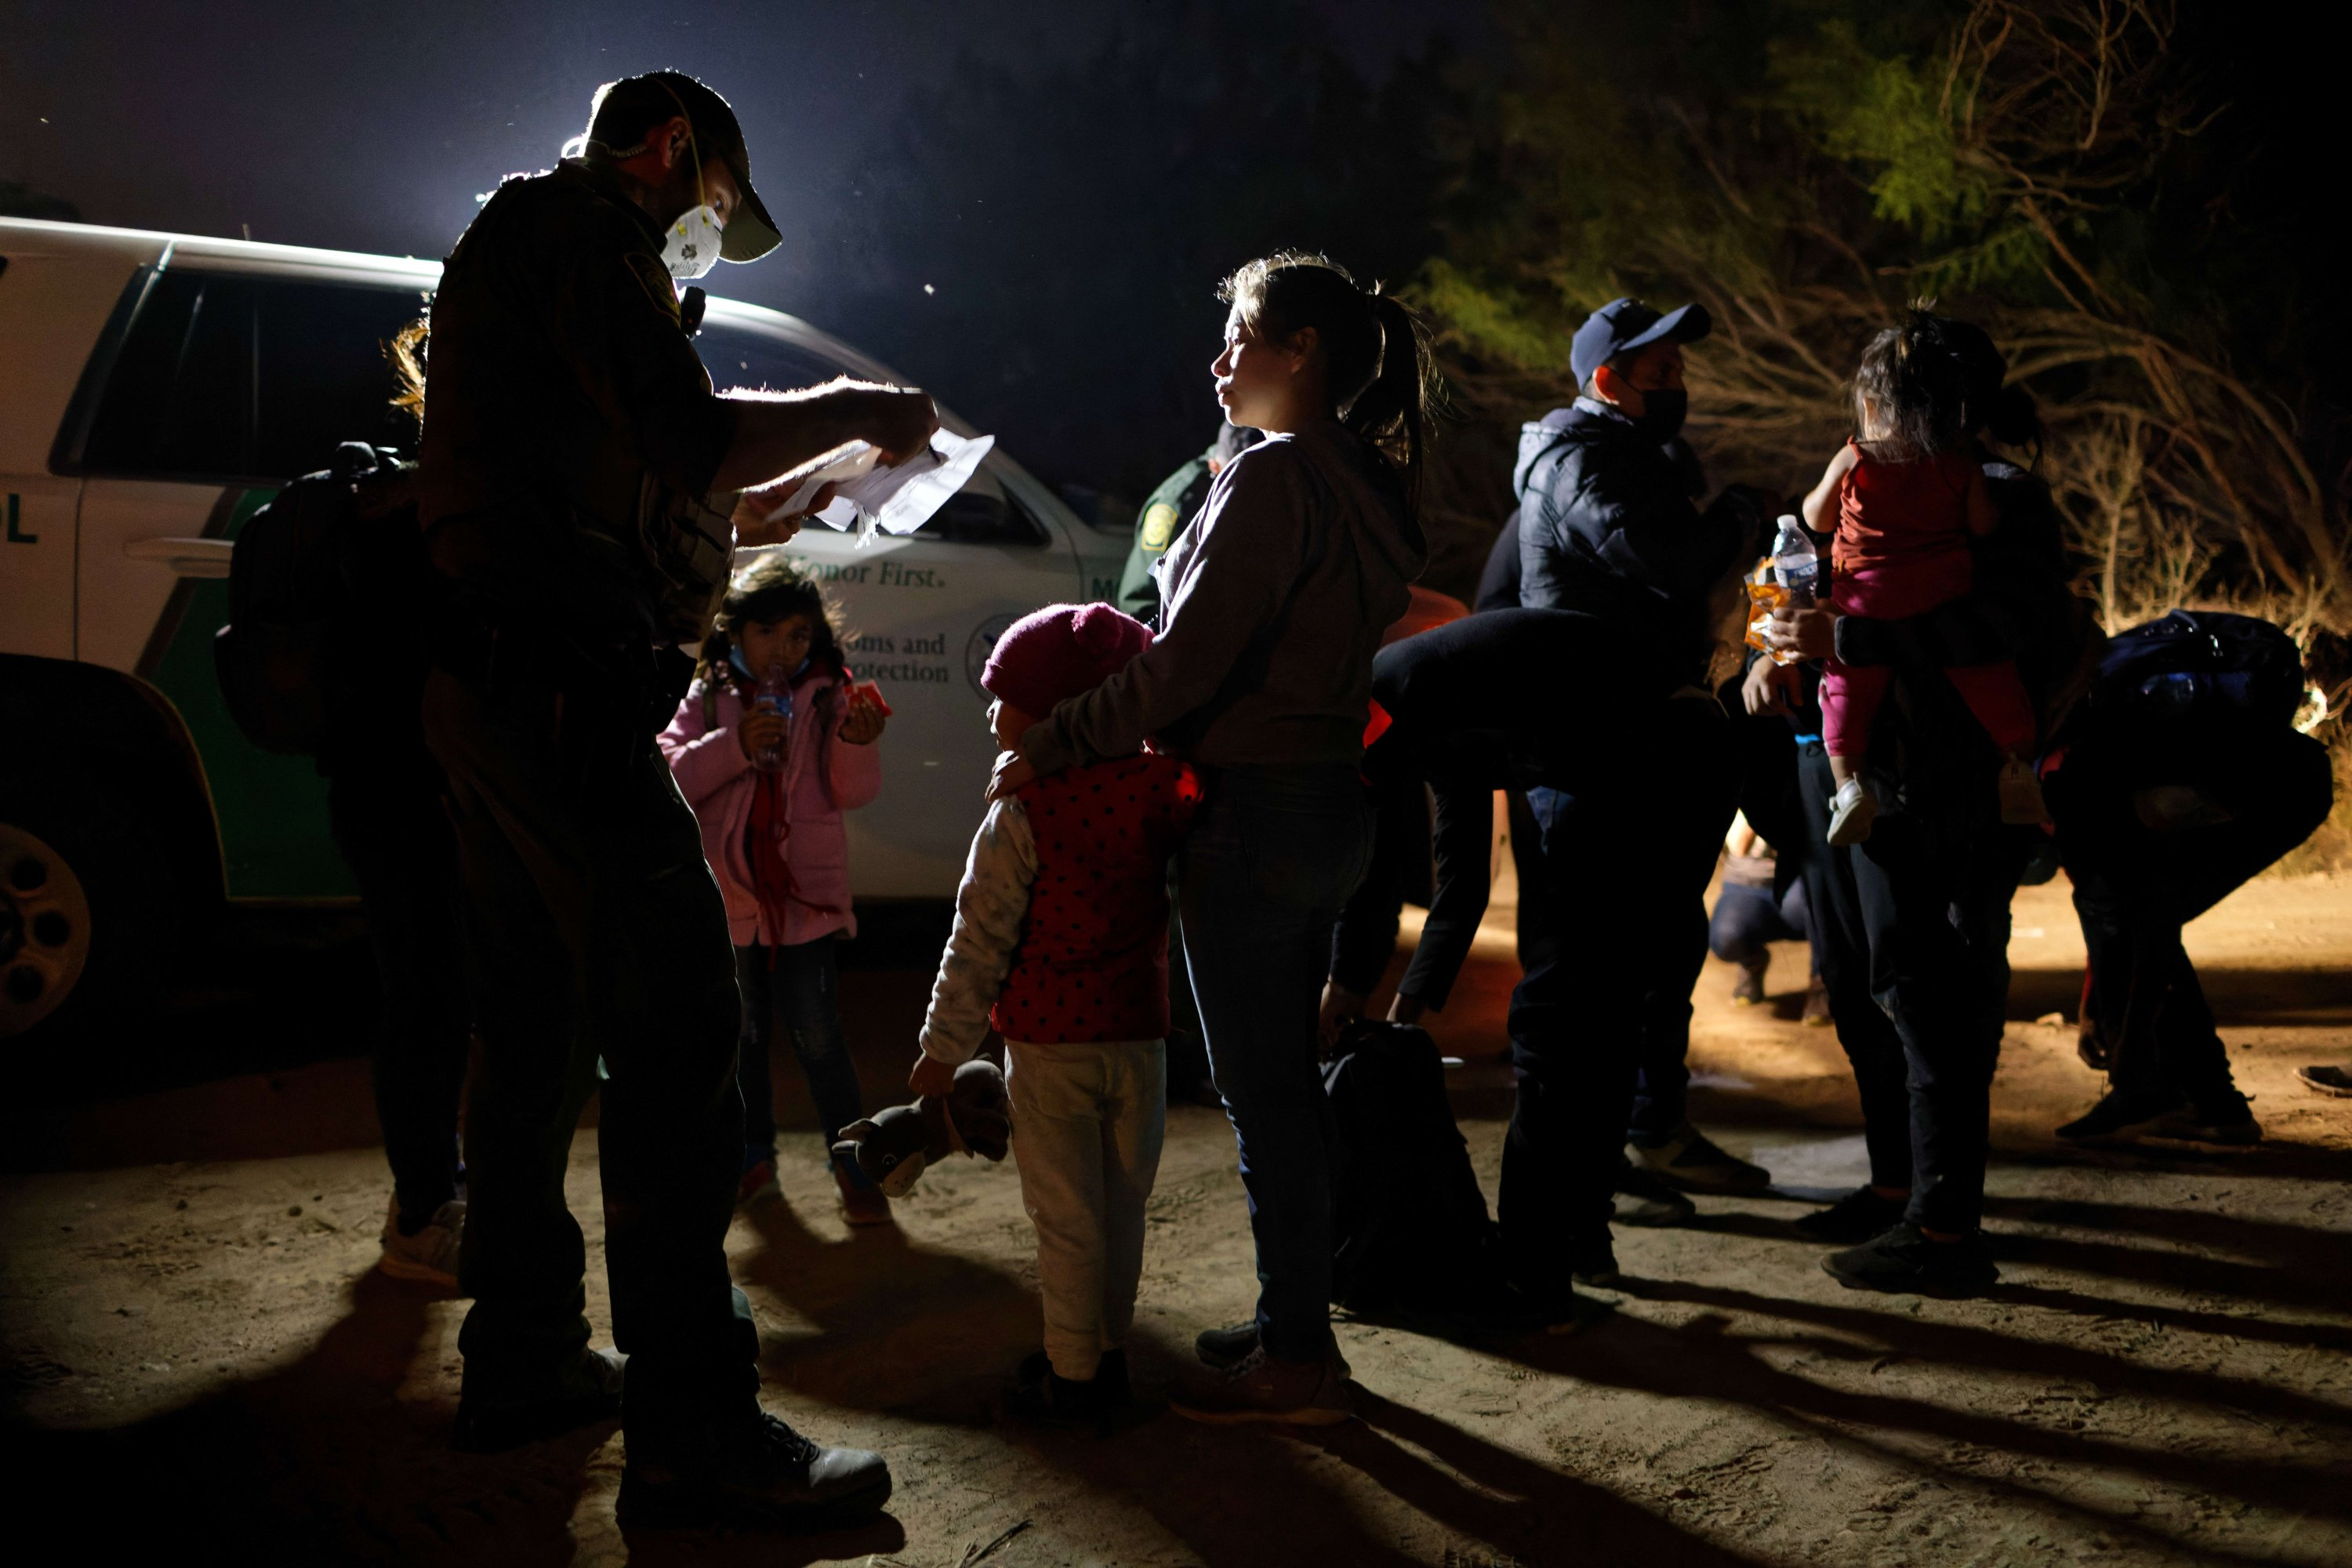 A U.S. border patrol agent registers immigrant families after they crossed the Rio Grande from Mexico, in Roma, Texas, U.S., April 27, 2021. (AP Photo)